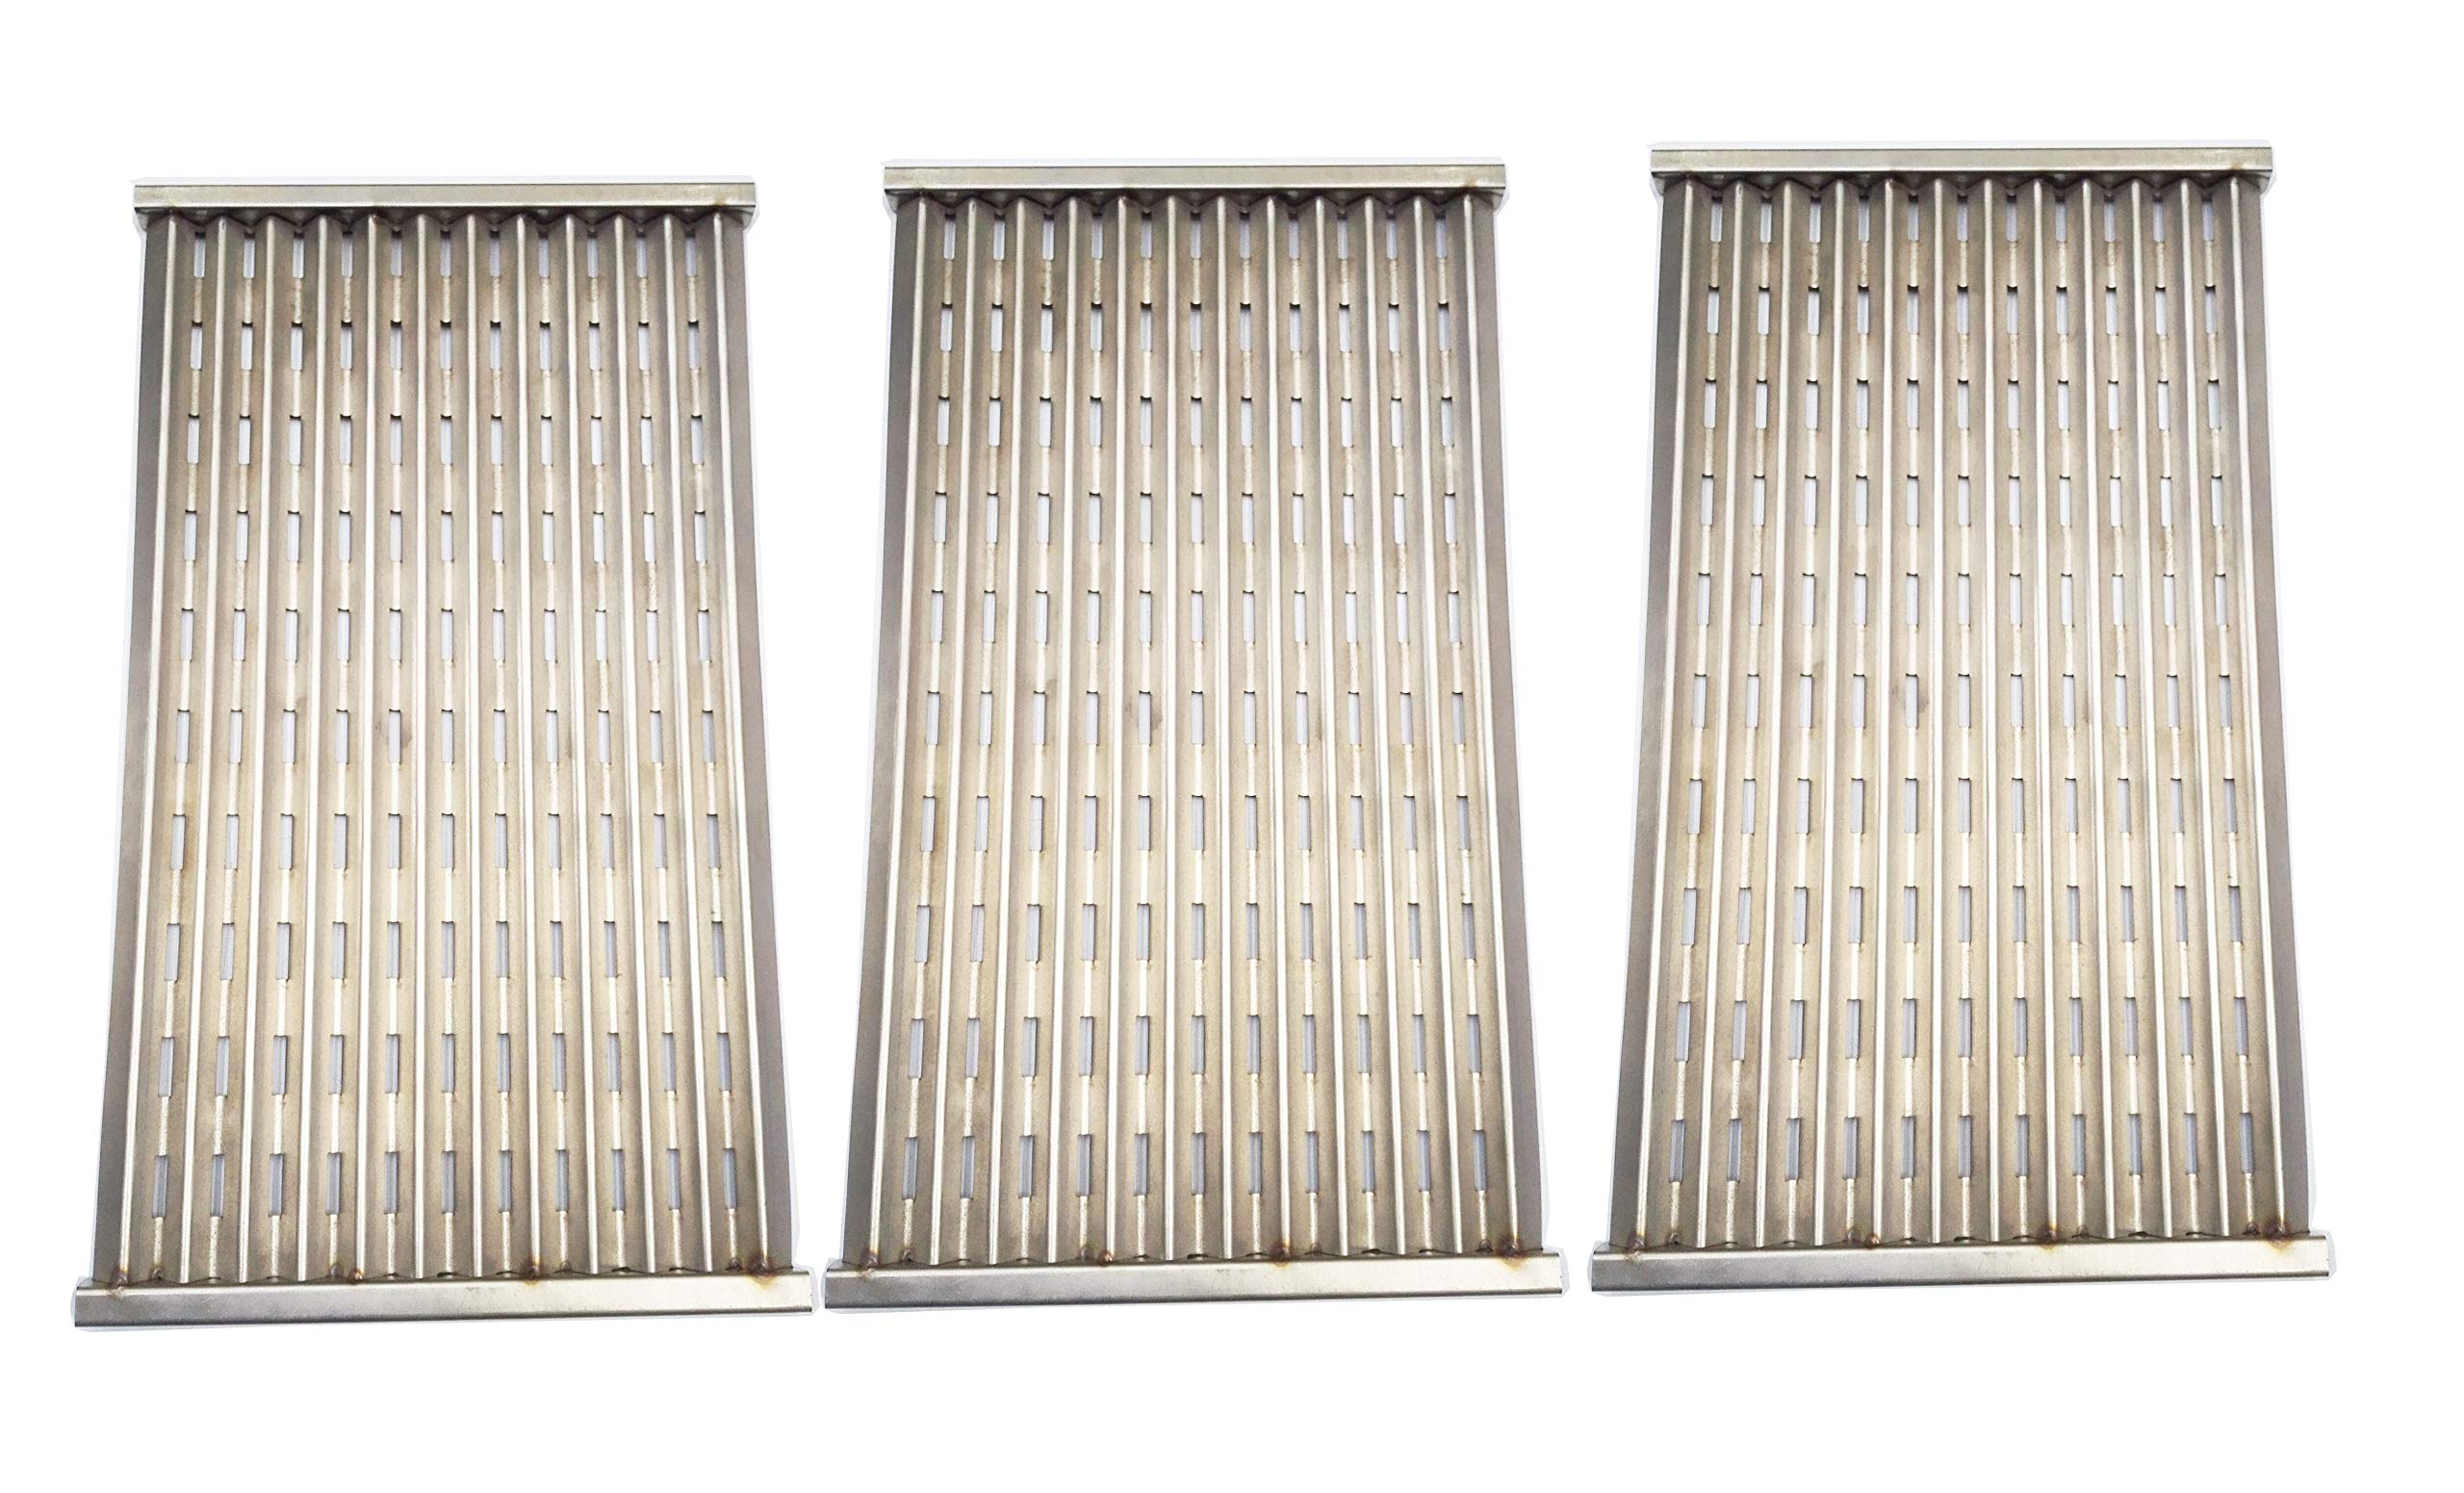 Zljiont 3 Pack Stainless Steel Cooking Grid for Charbroil 463242715, 463242716, 463276016, 466242715, 466242815